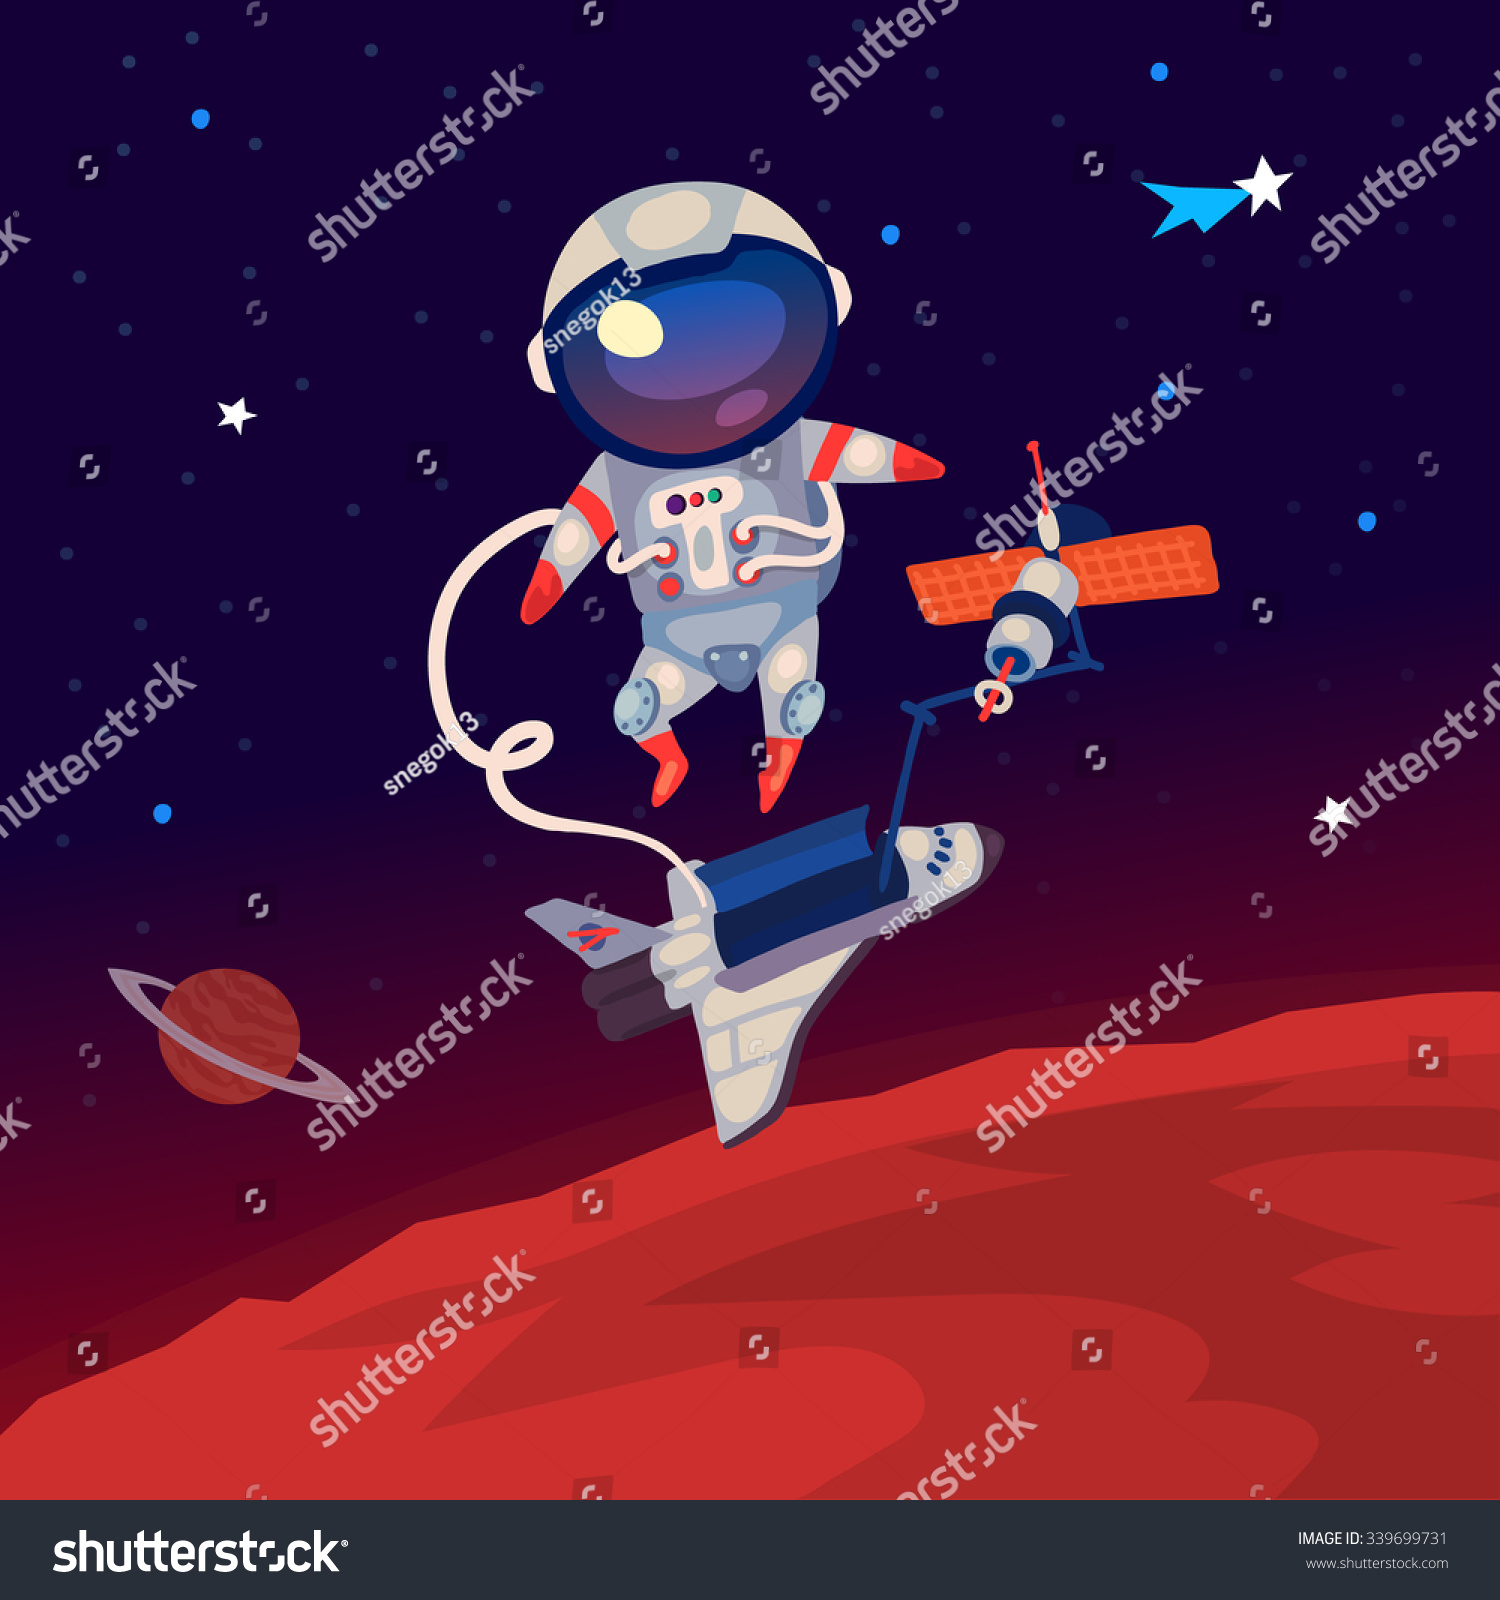 astronaut floating in space cartoon - photo #25